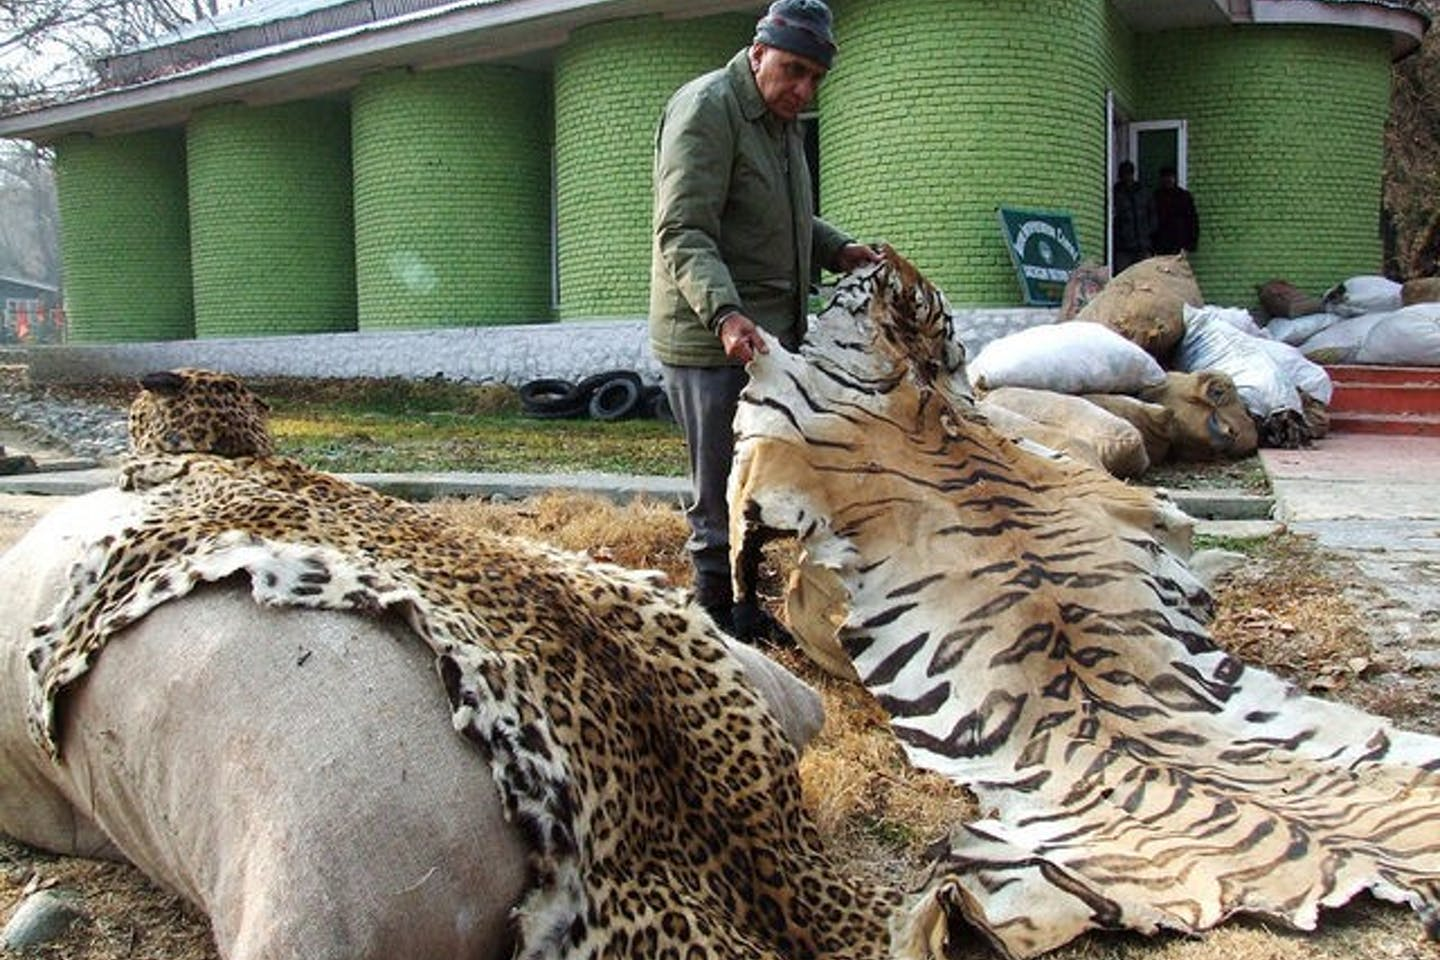 Illegal wildlife products, Kashmir, India